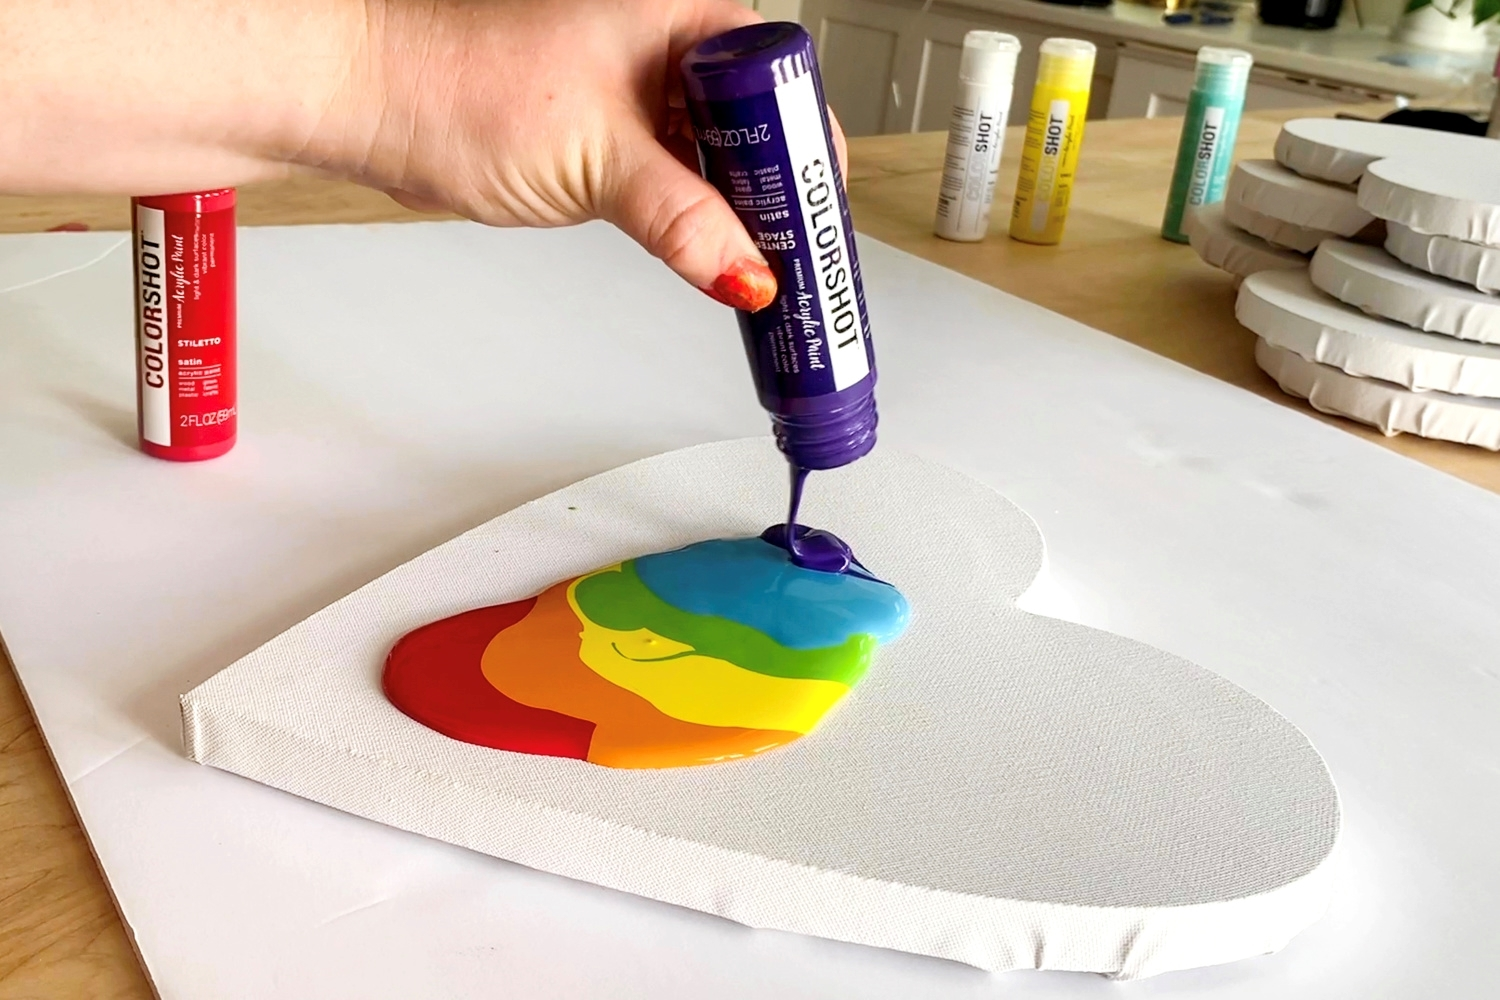 Pour paints directly from the bottles